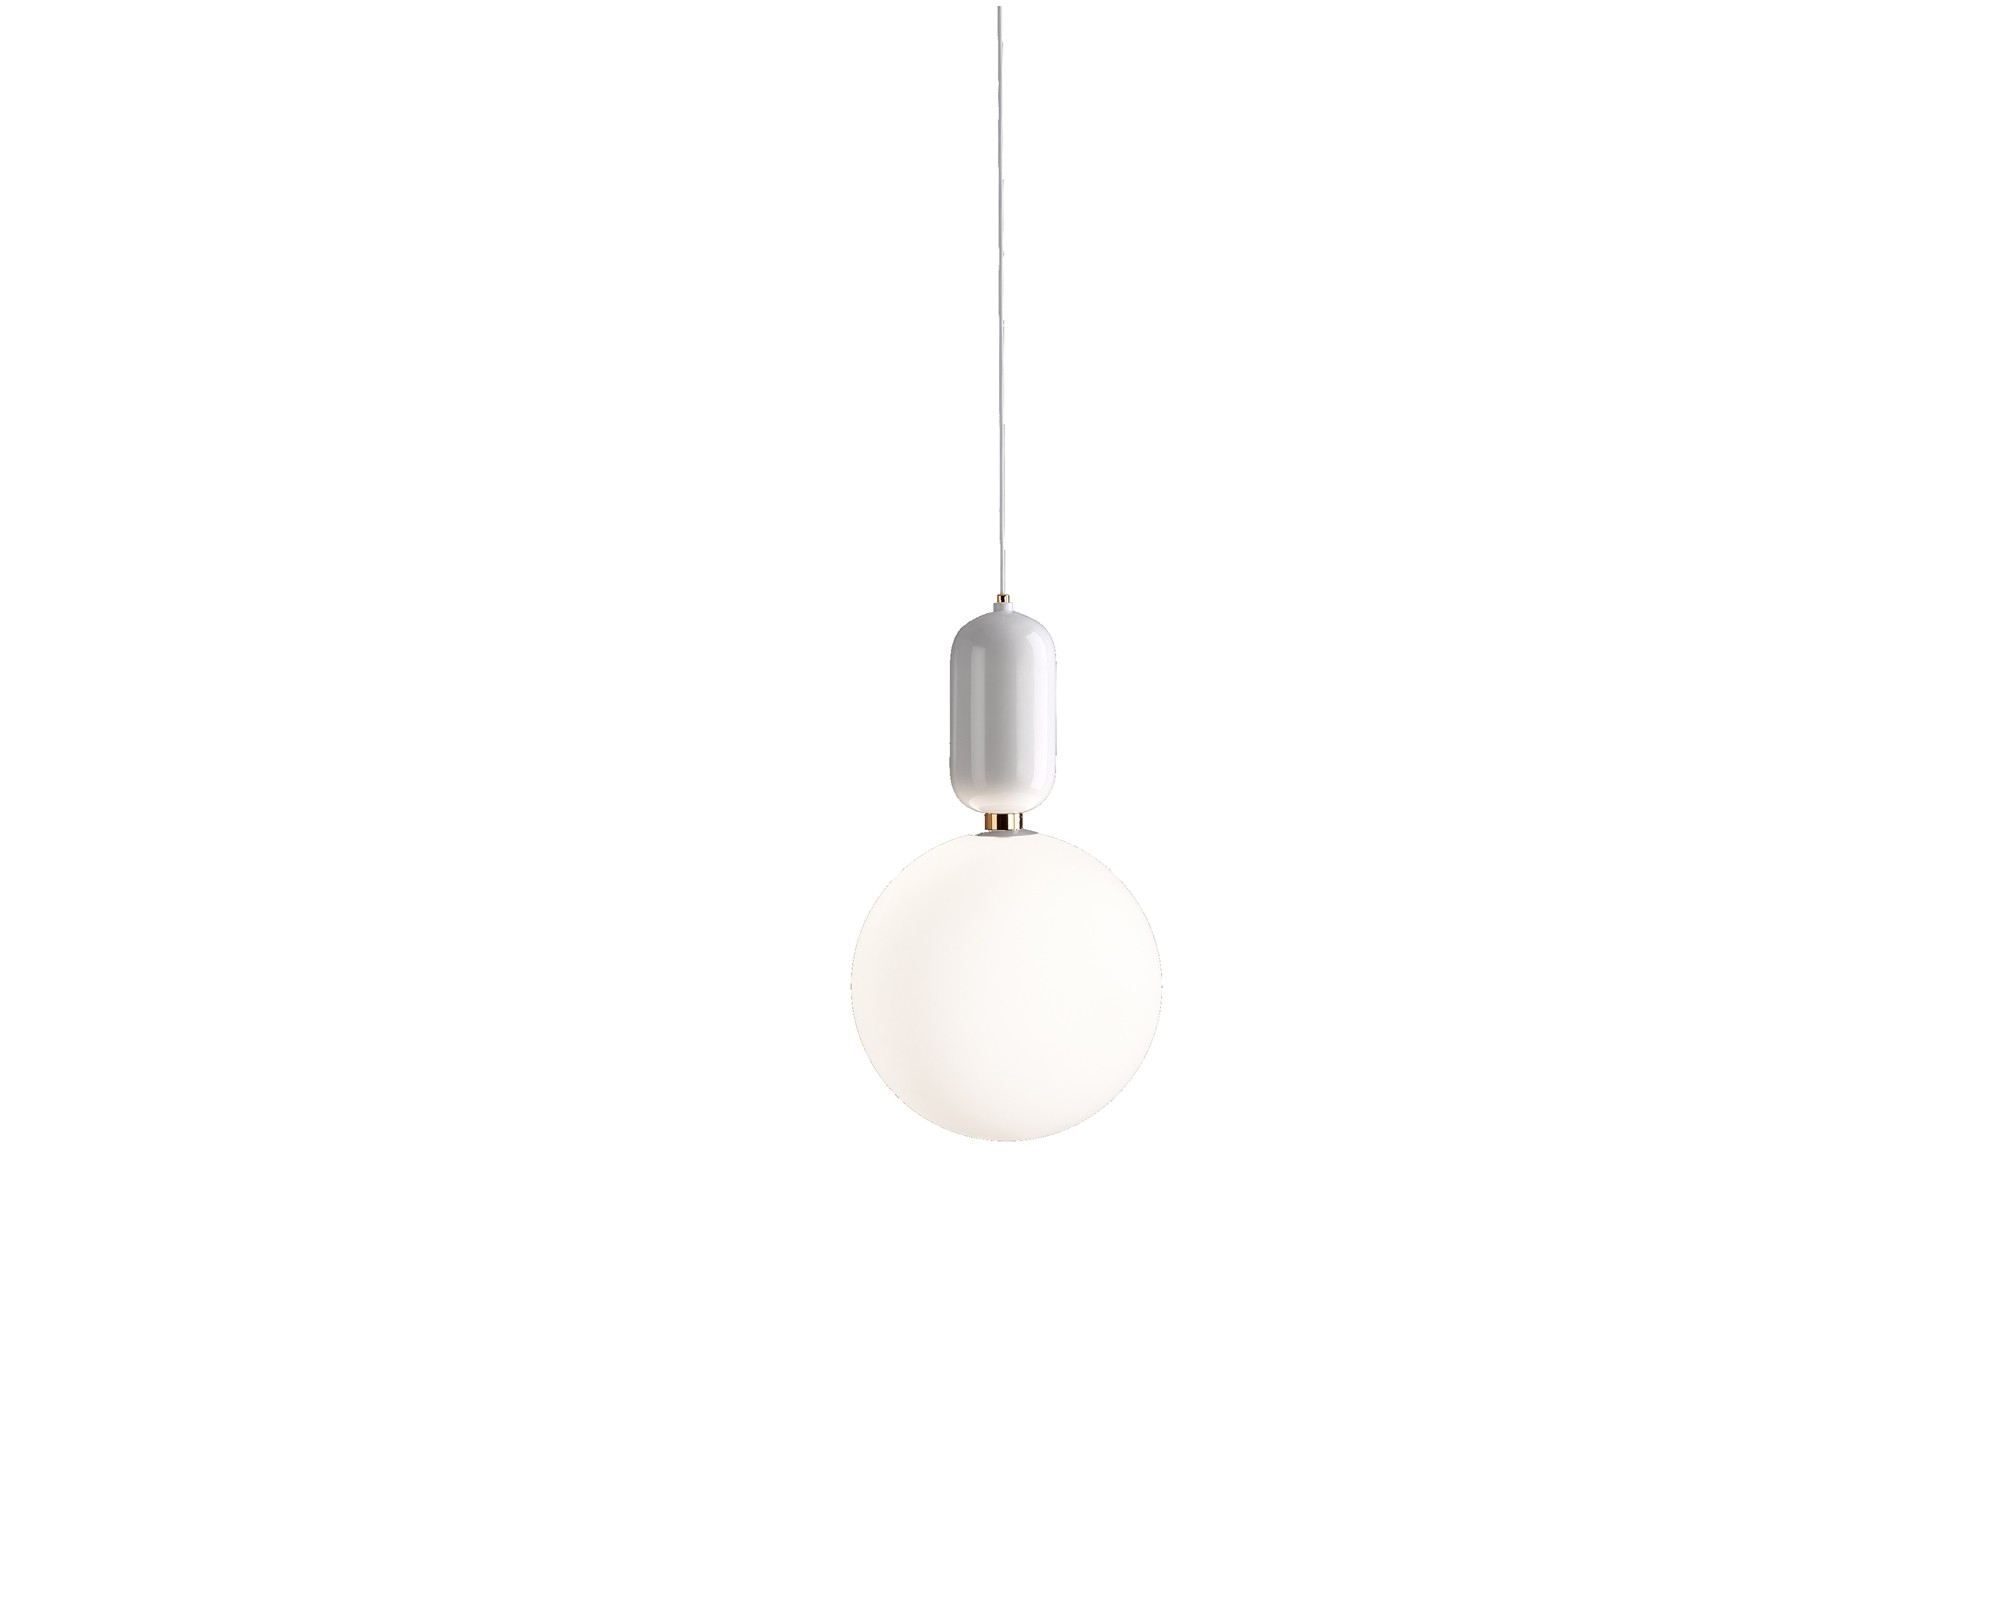 Aballs T GR Suspension Lamp